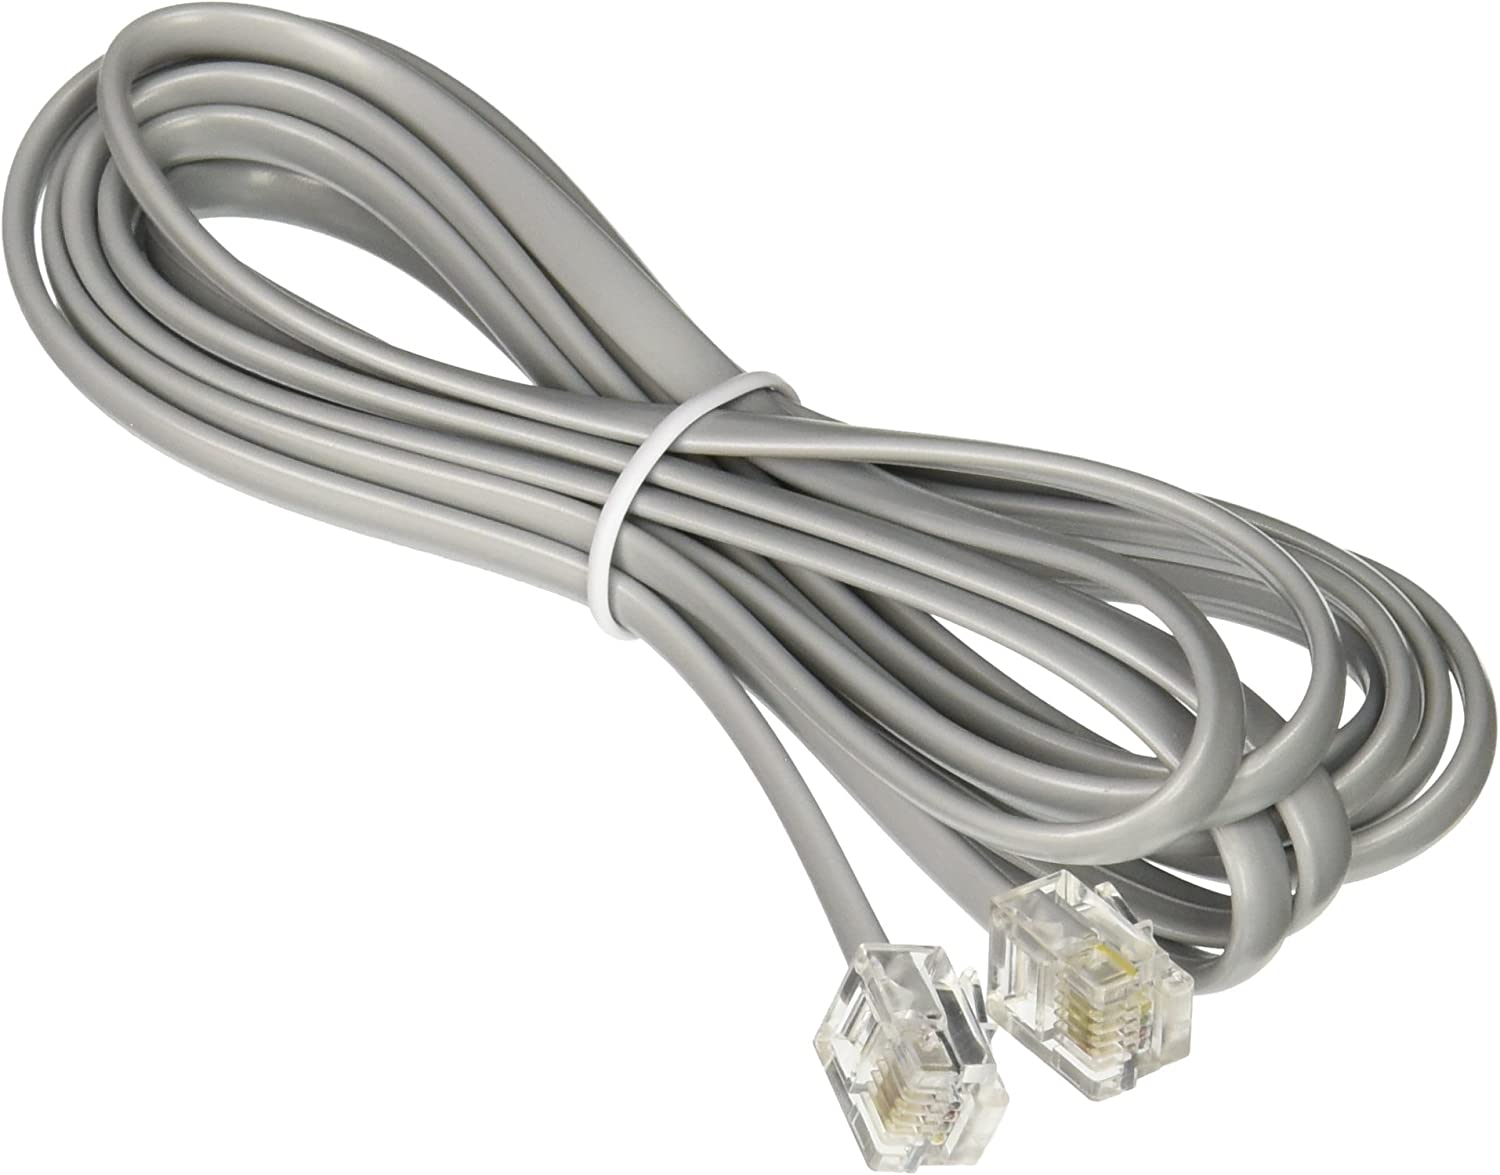 Networx RJ11 6 Conductor 7 Straight Wired Modular Telephone Cable